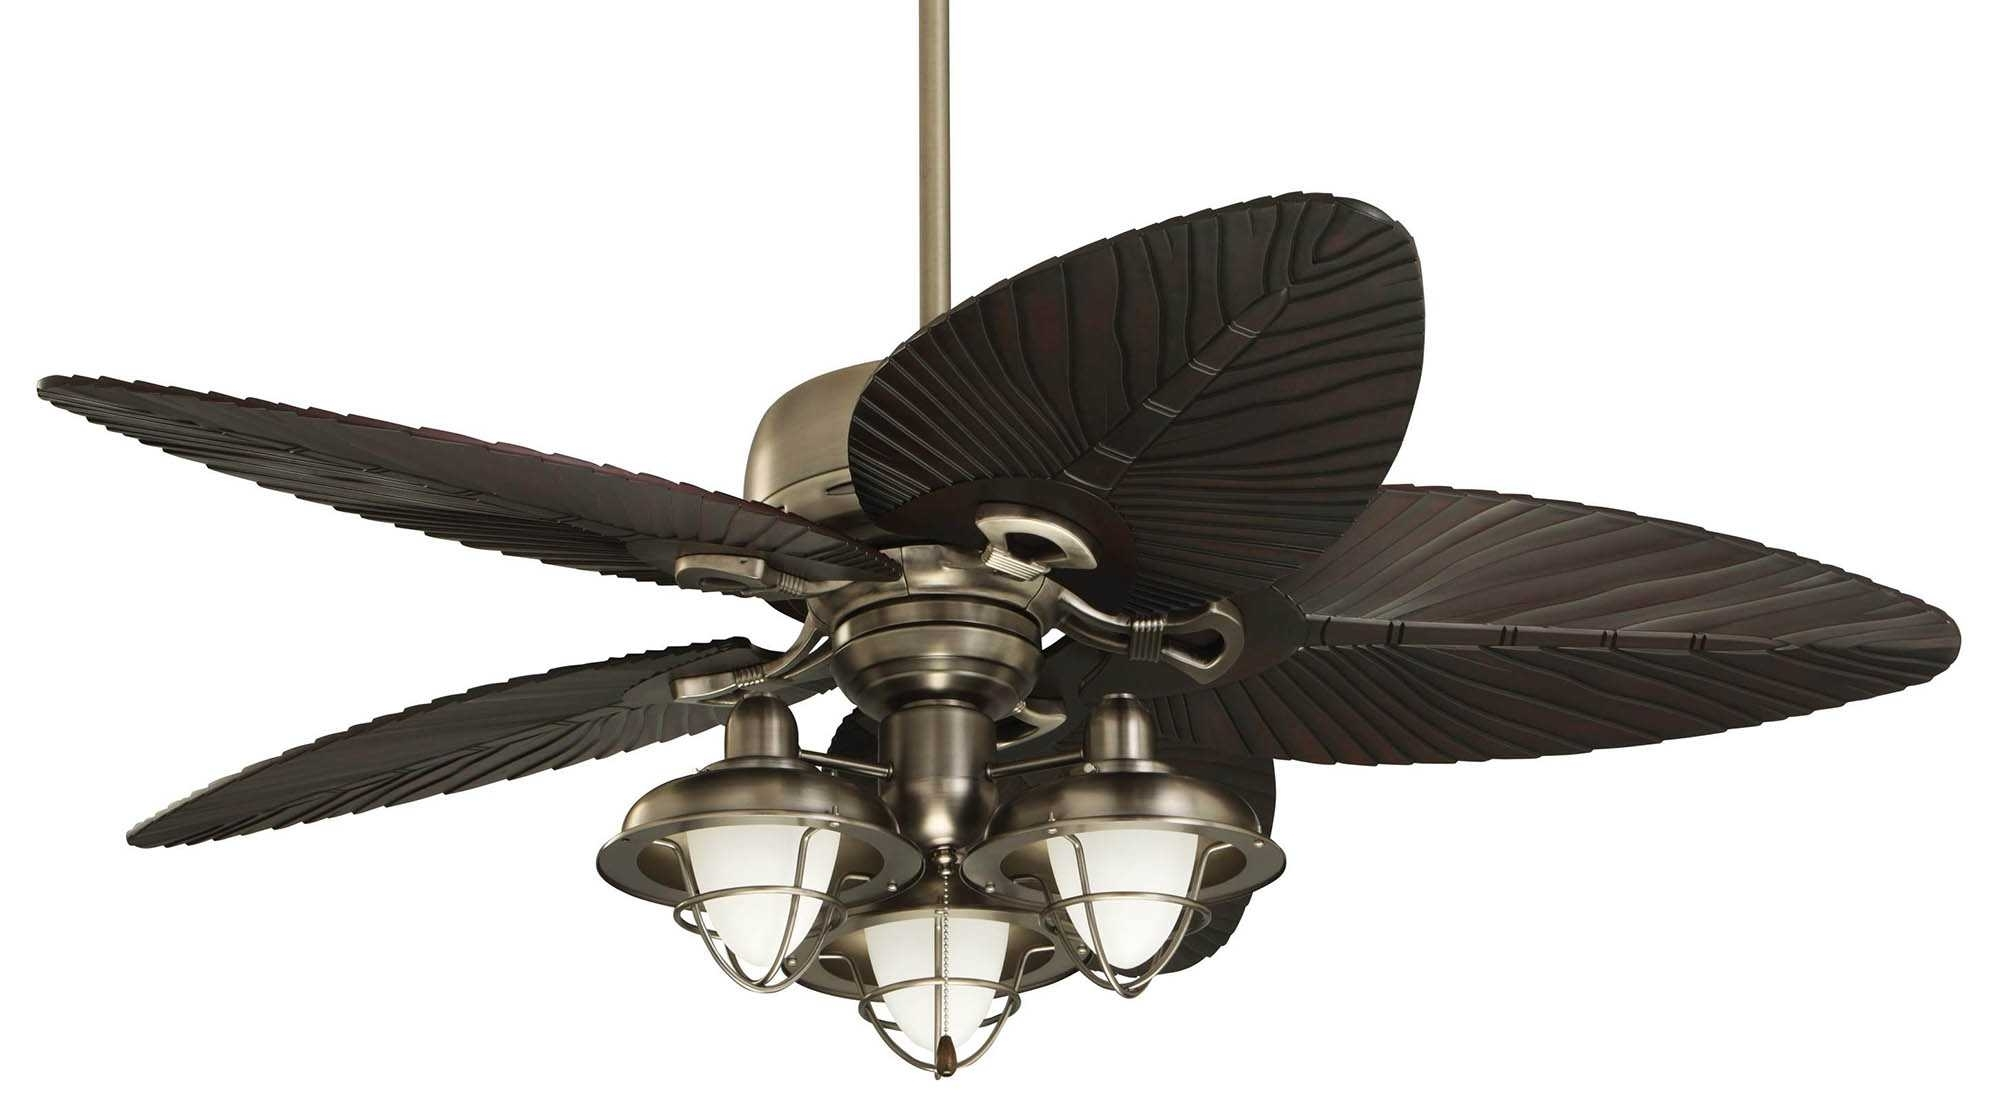 Ceiling Fan ~ Tropical Outdoor Ceiling Fans Picture Ideas With Light In Outdoor Ceiling Fans With Tropical Lights (View 13 of 15)